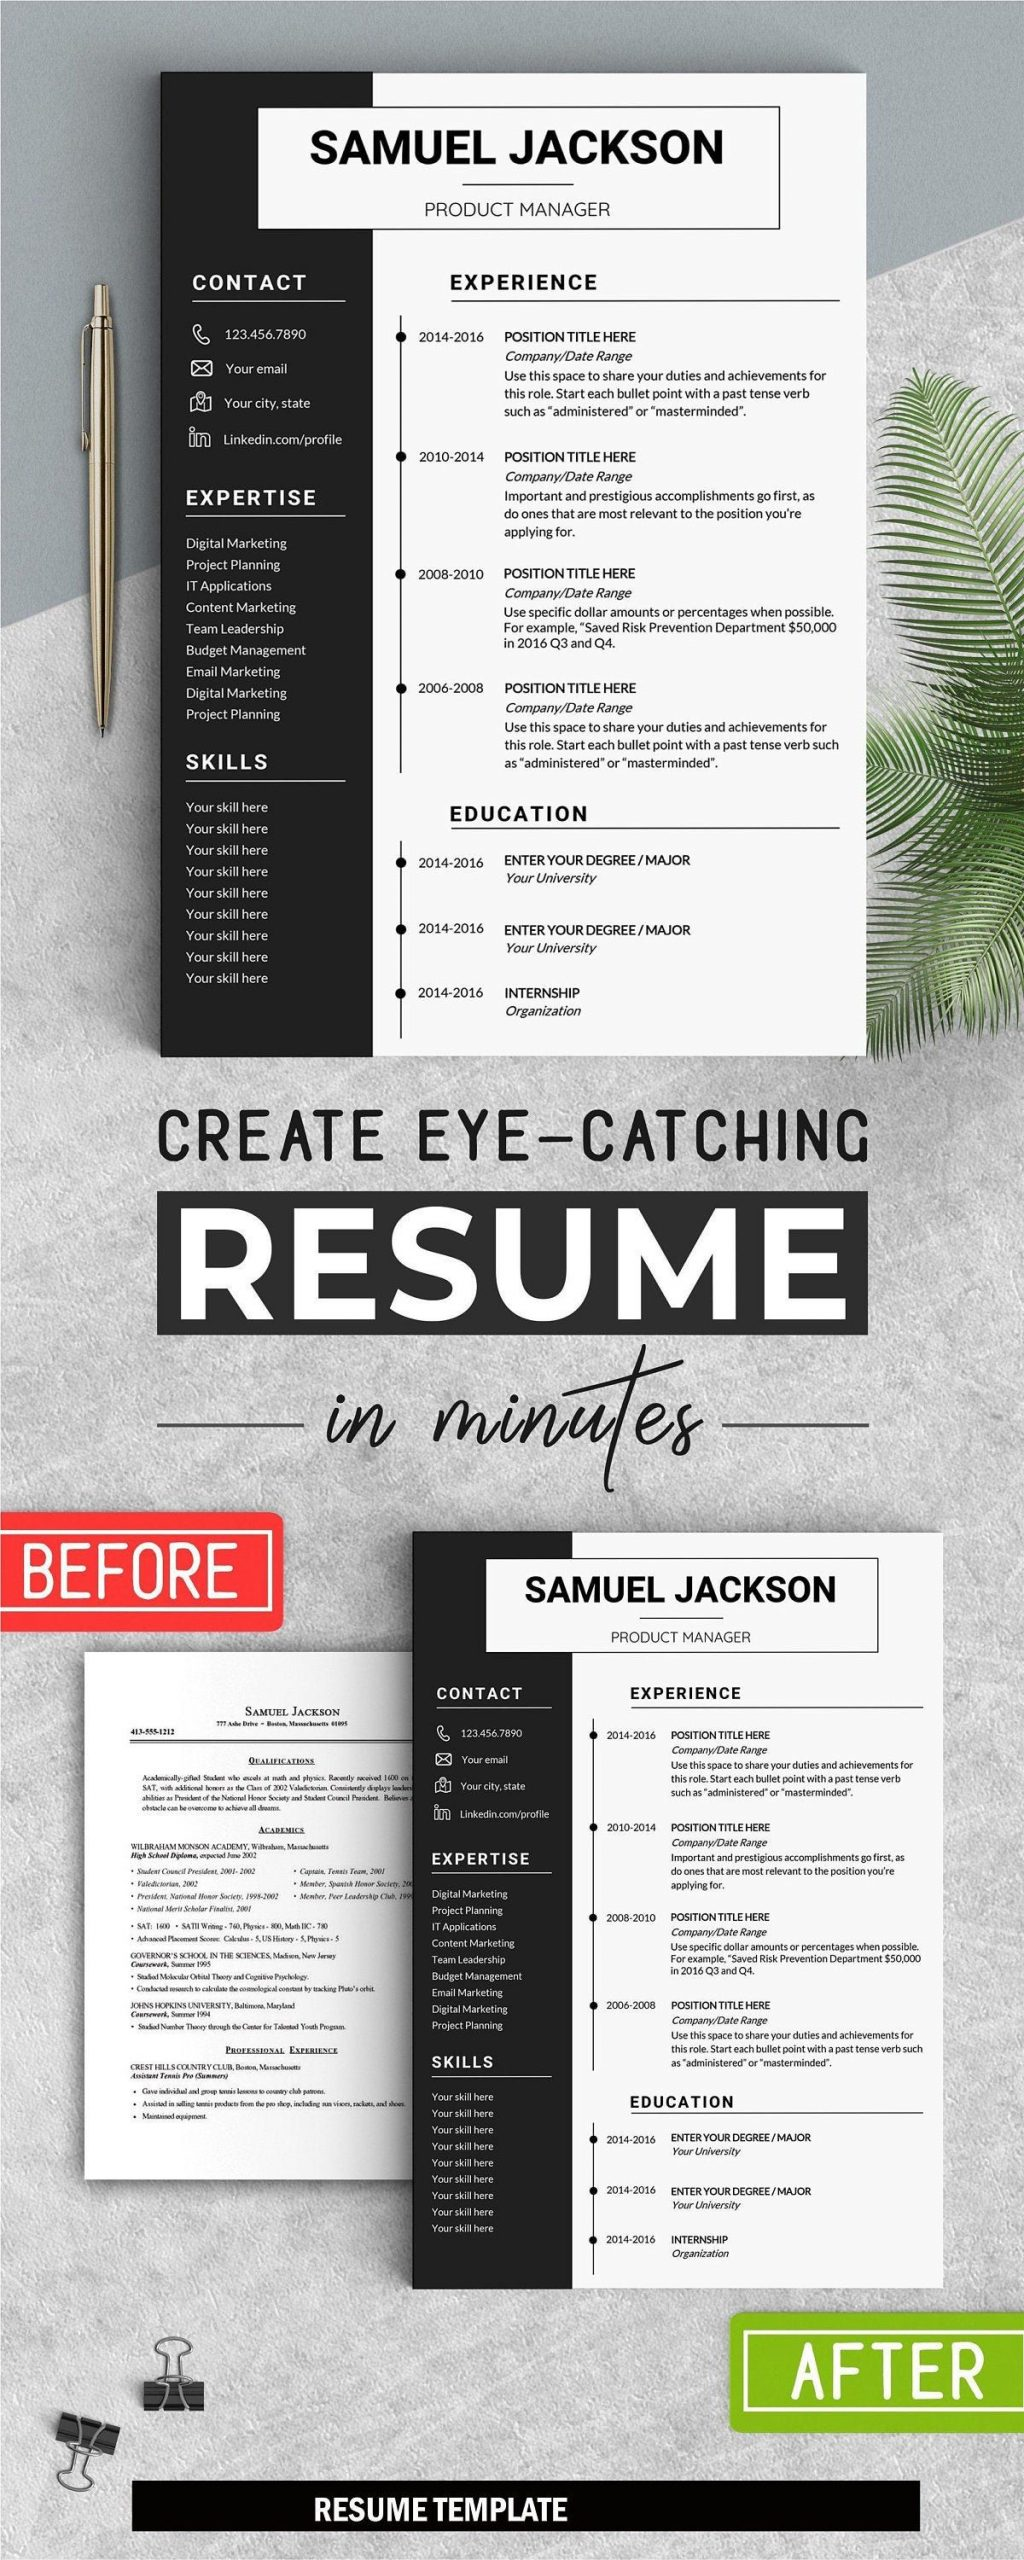 Professional Resume Instant Download CV WORD Cover letter 1 page resume Cover letter Editable in WORD